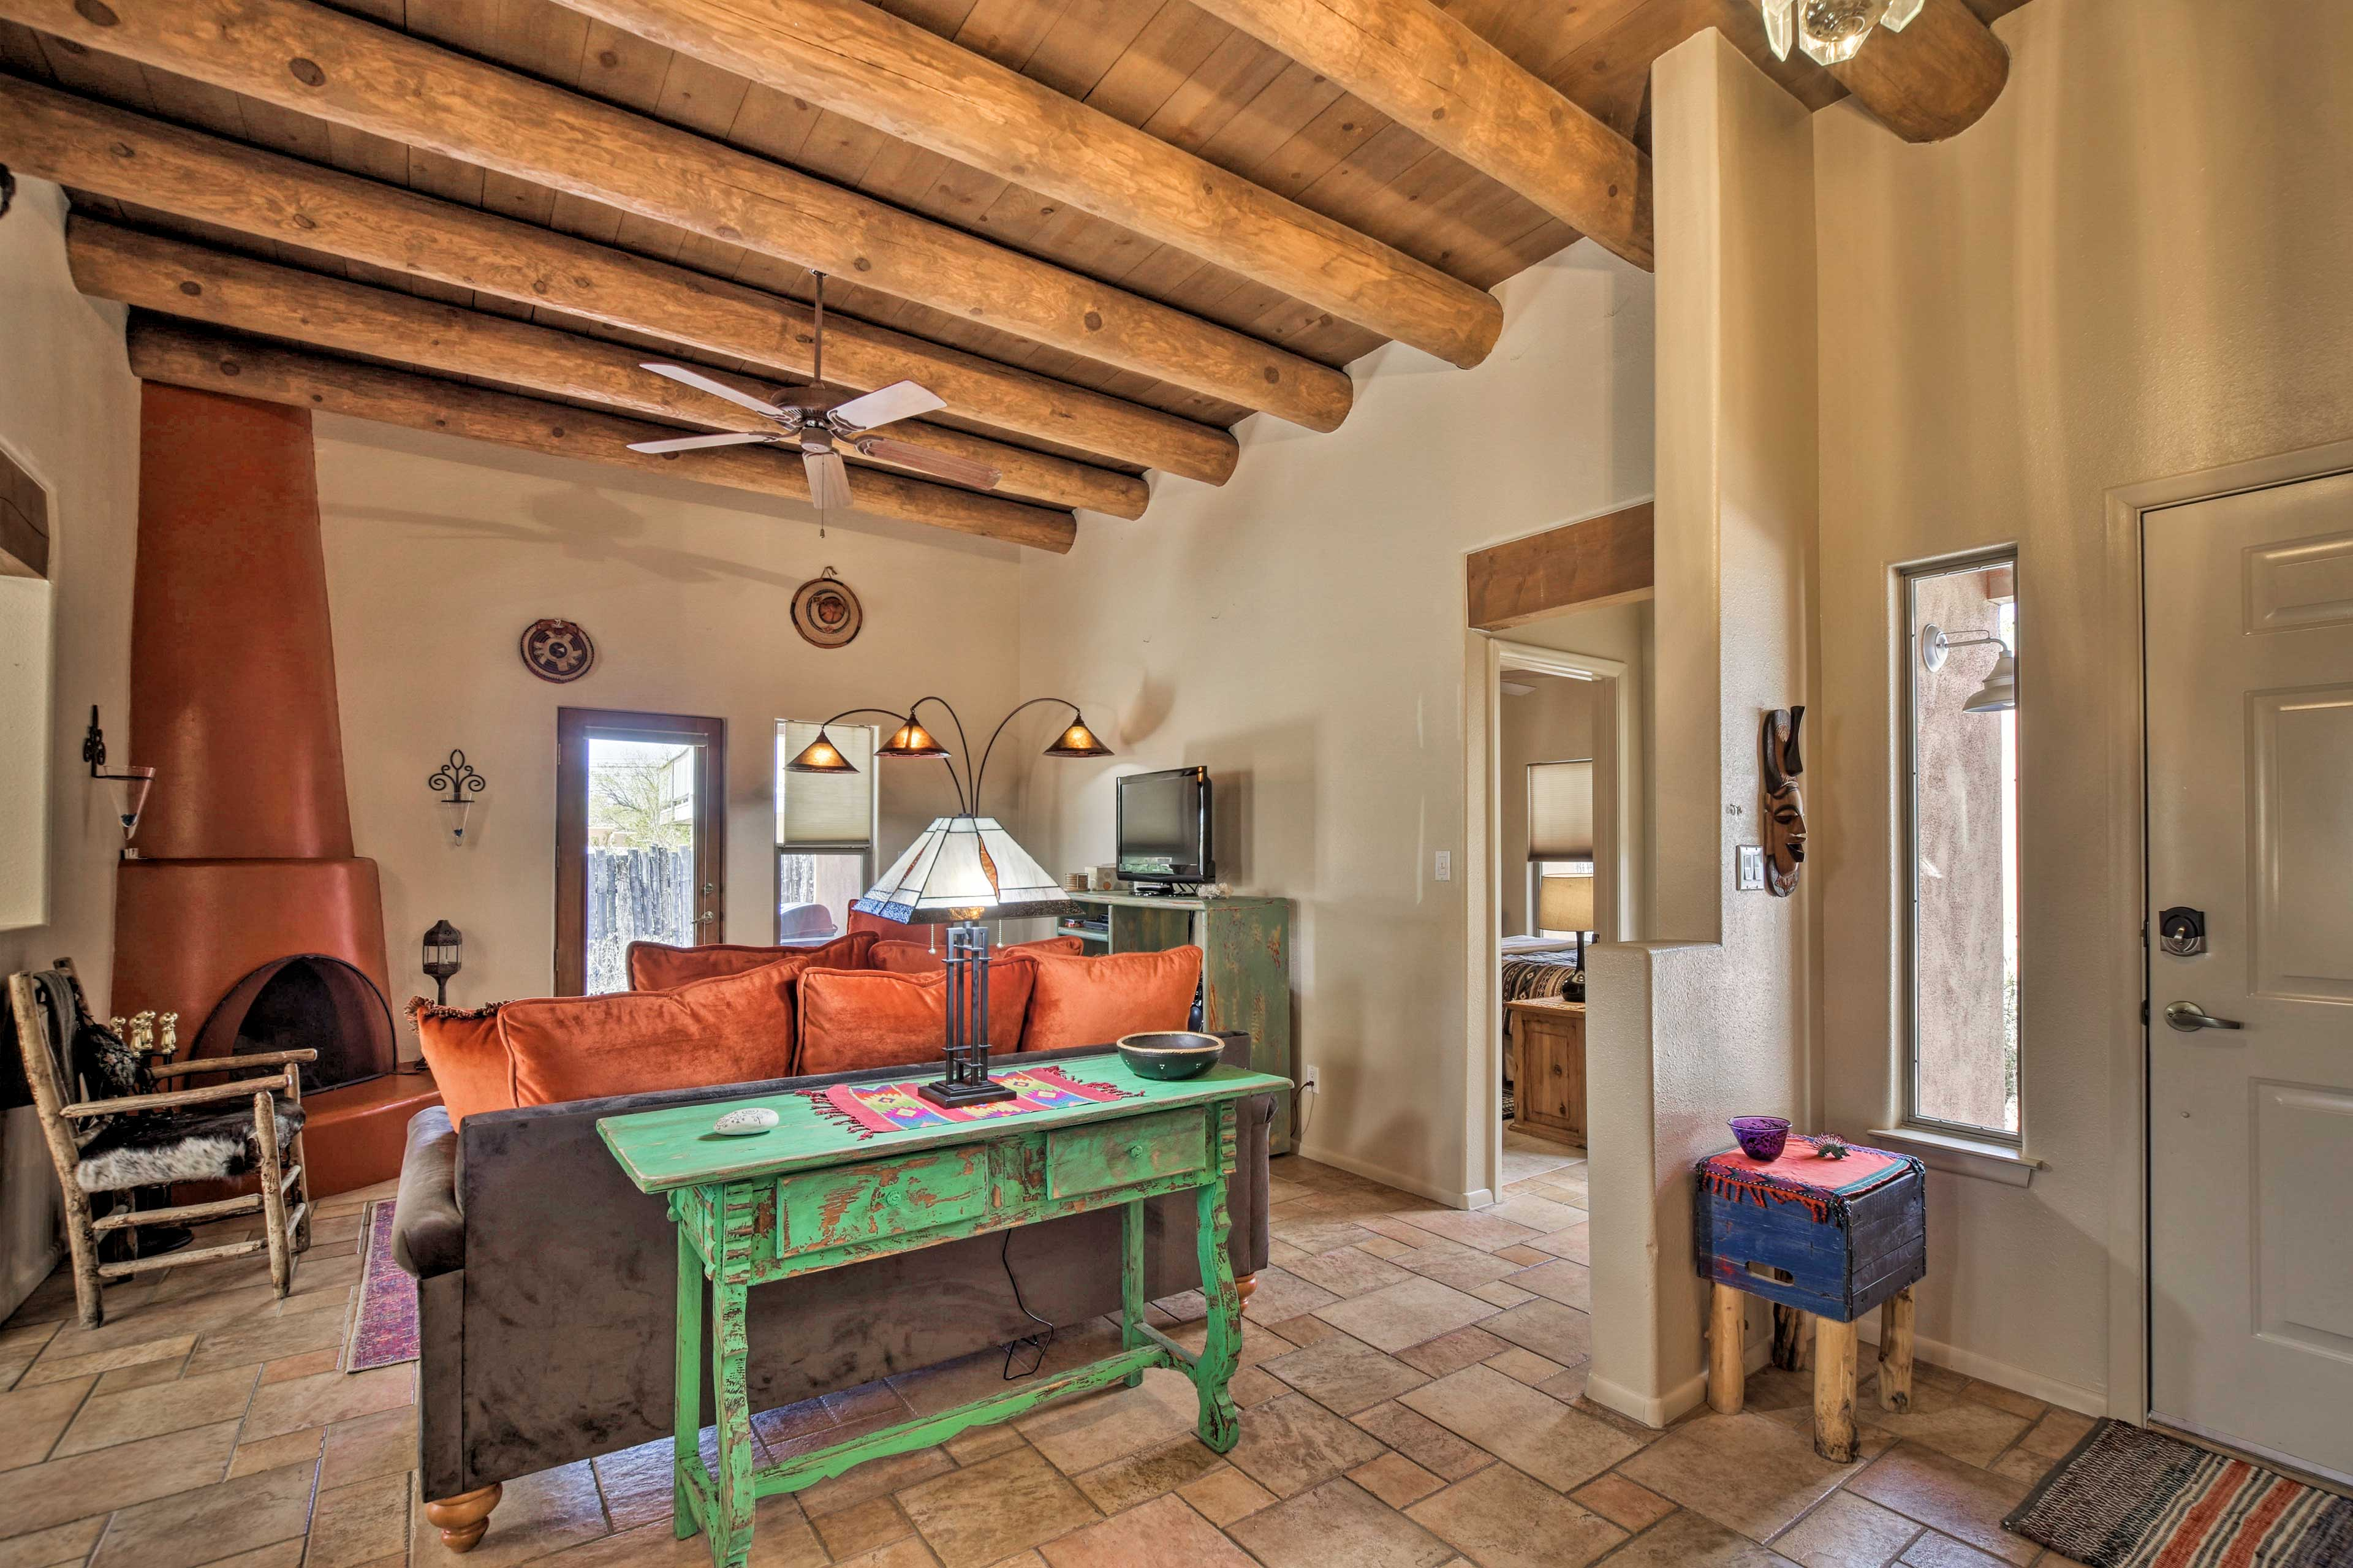 The interior features exposed wood beams and tasteful decor.